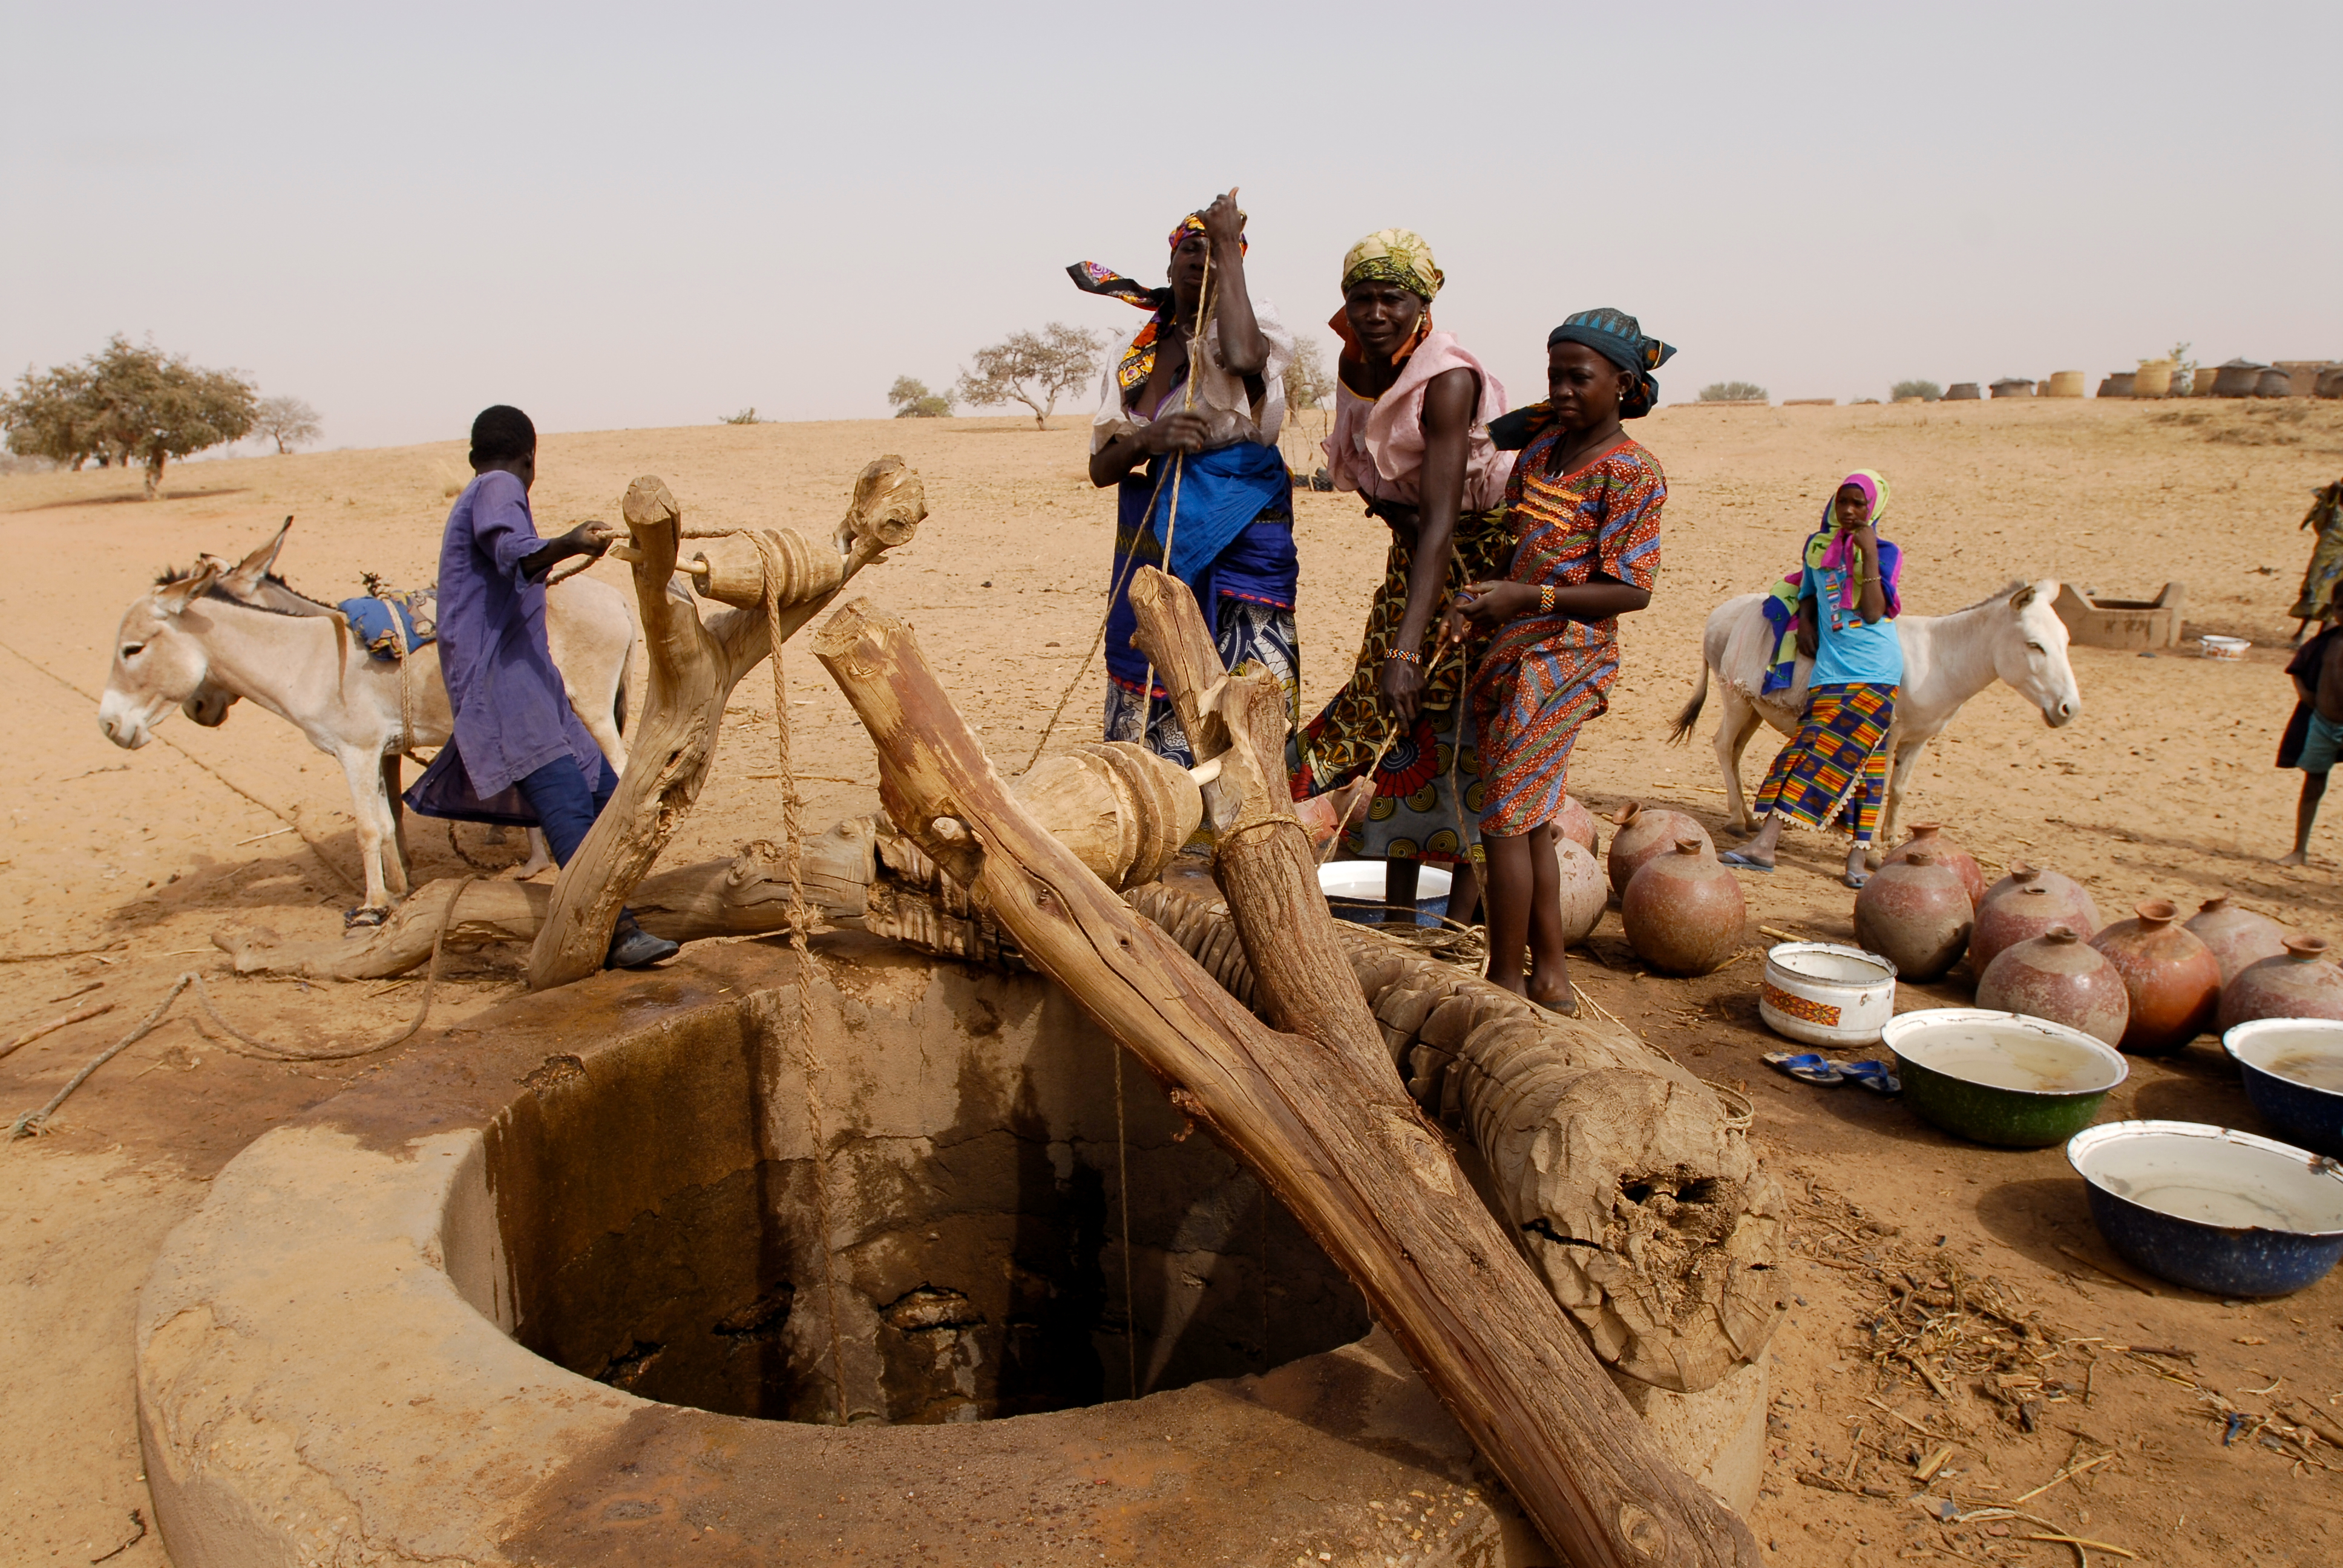 A simple wooden pulley reduces the effort needed to haul water from this well in Niger. Photo from World Vision Australia